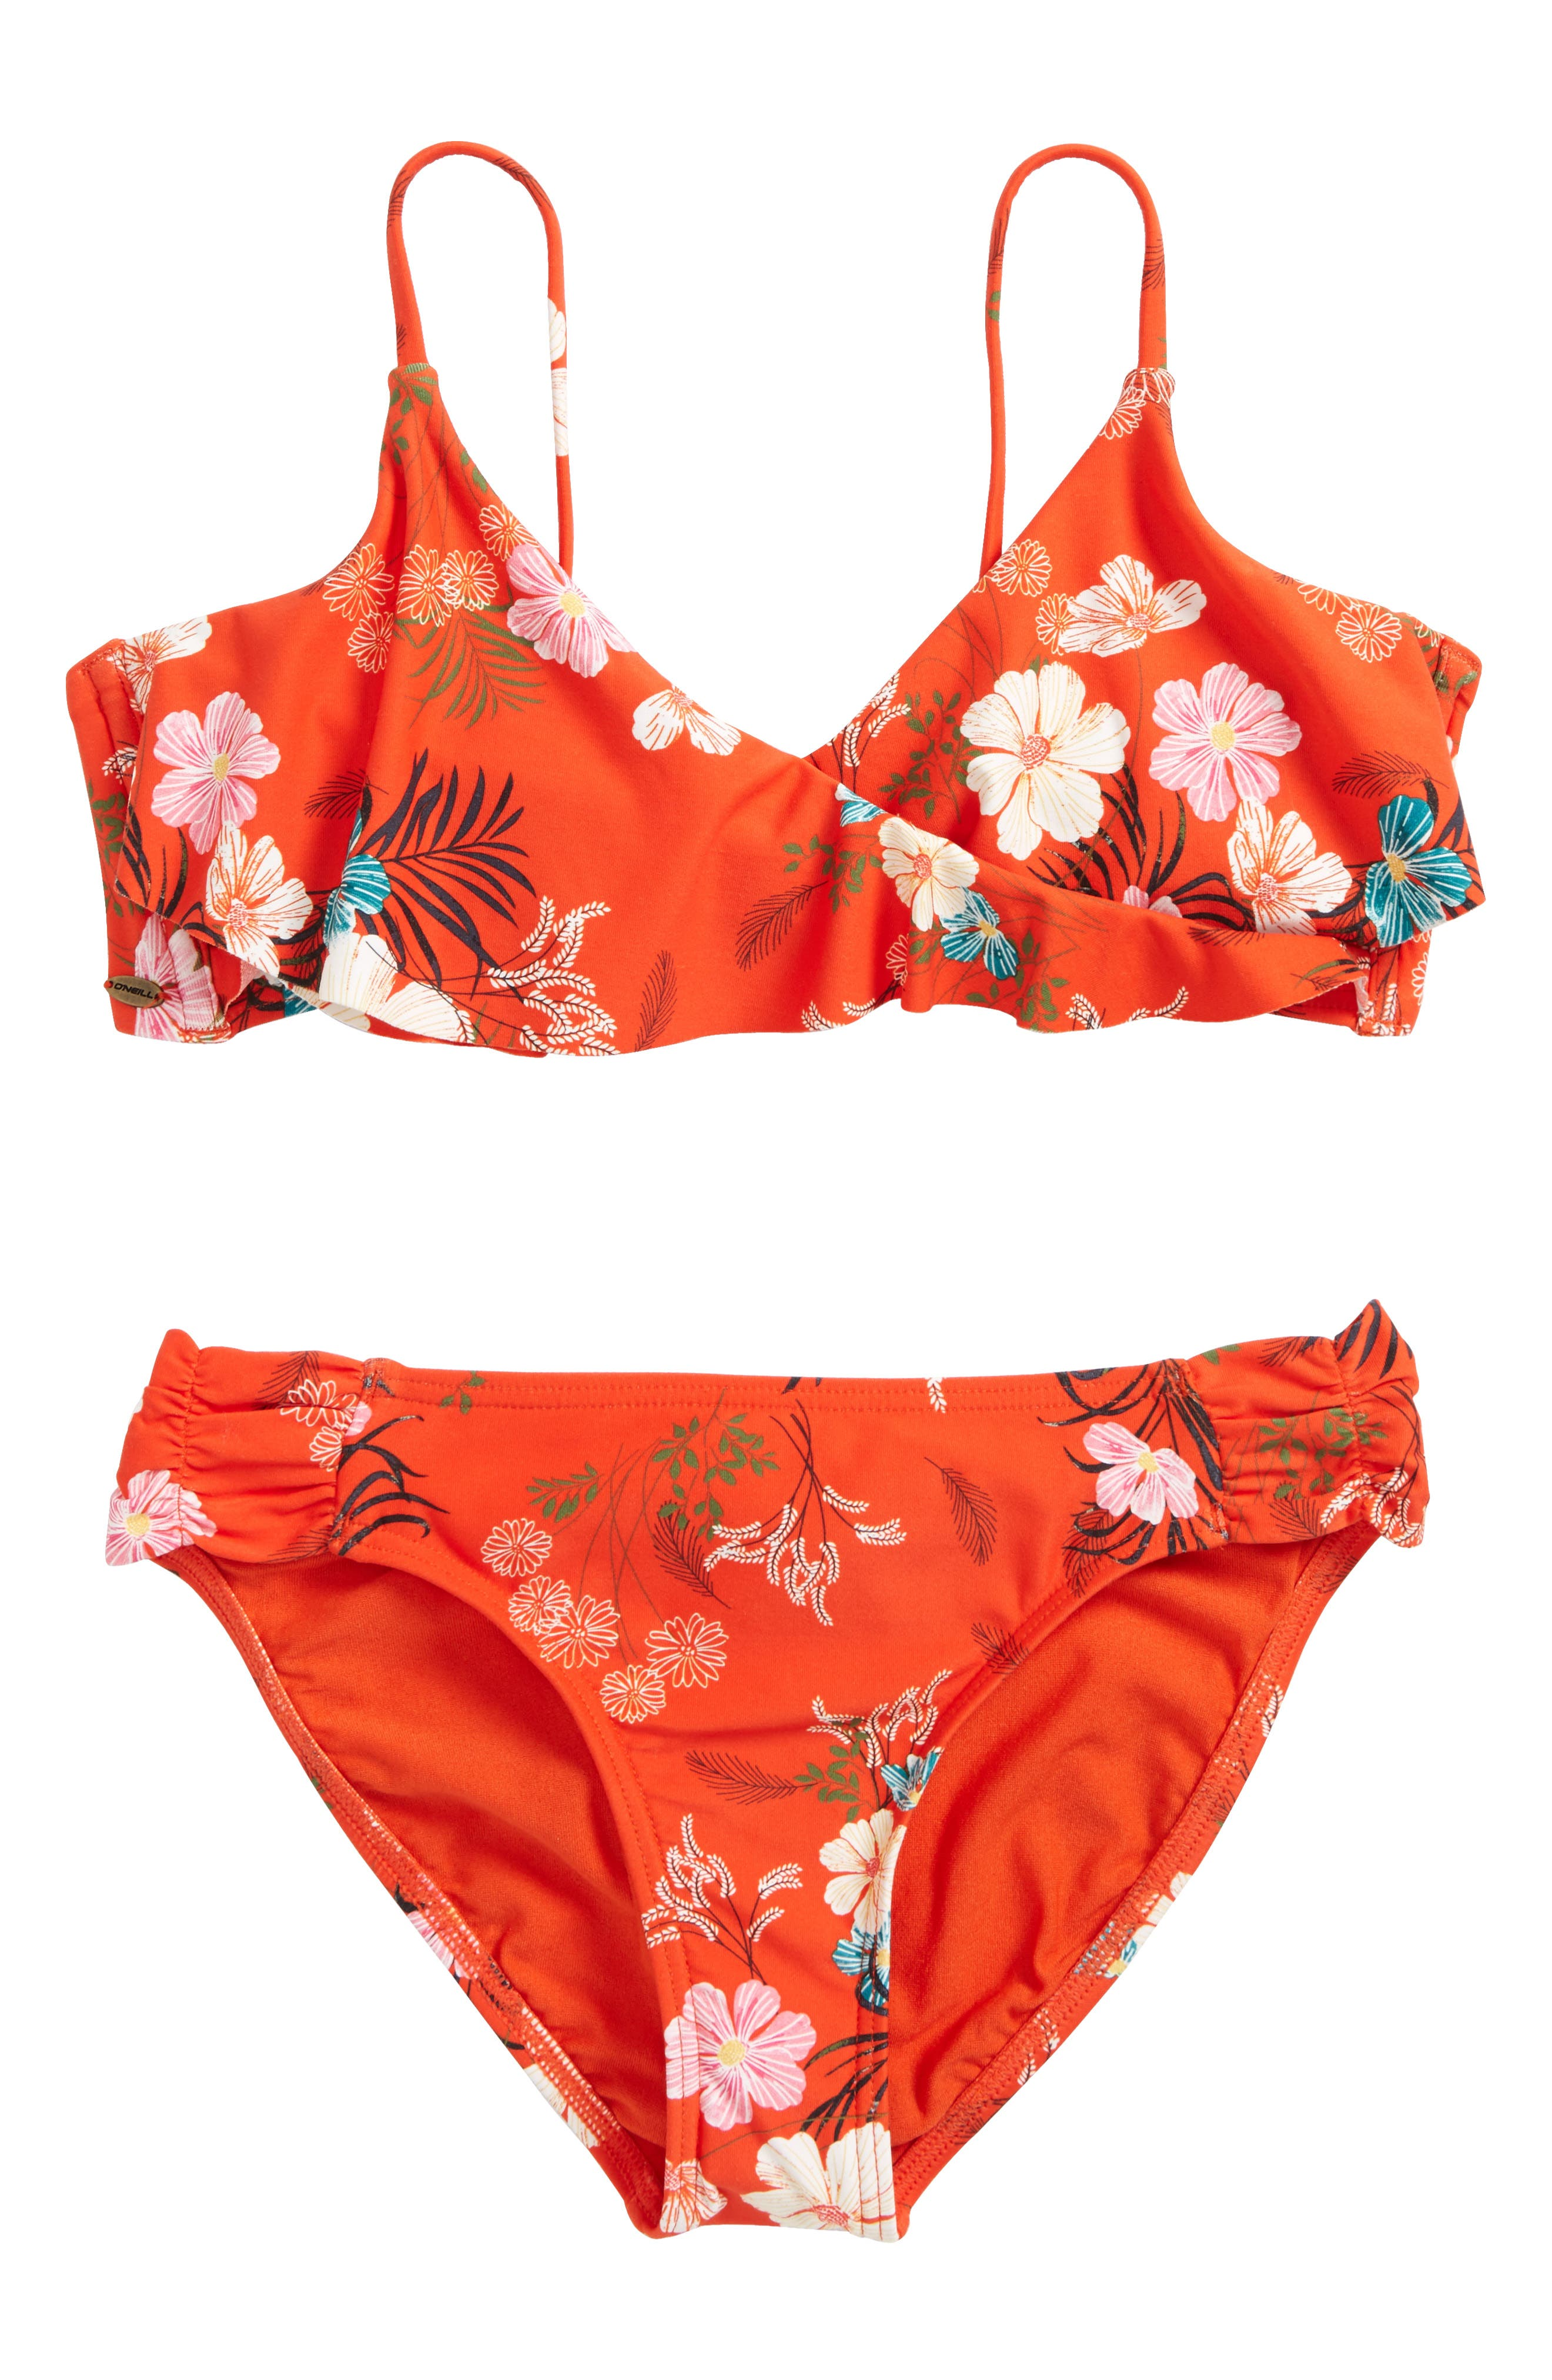 O'NEILL Lucy Floral Ruffle Two-Piece Swimsuit, Main, color, 800